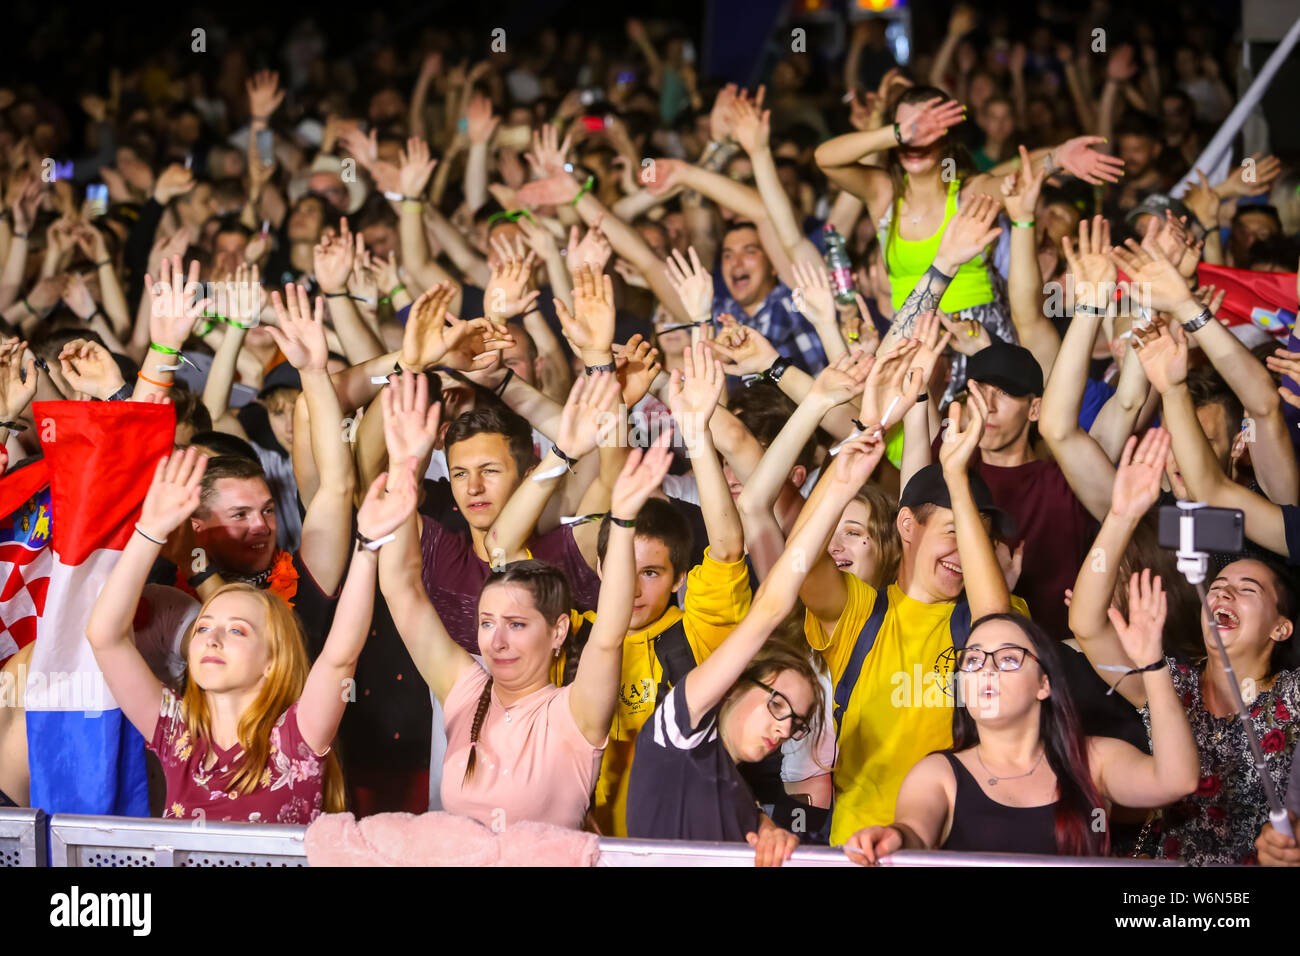 Brezje, Croatia - 20th July, 2019 : People dancing left, right with hands up during the Forestland, ultimate forest electronic music festival located Stock Photo